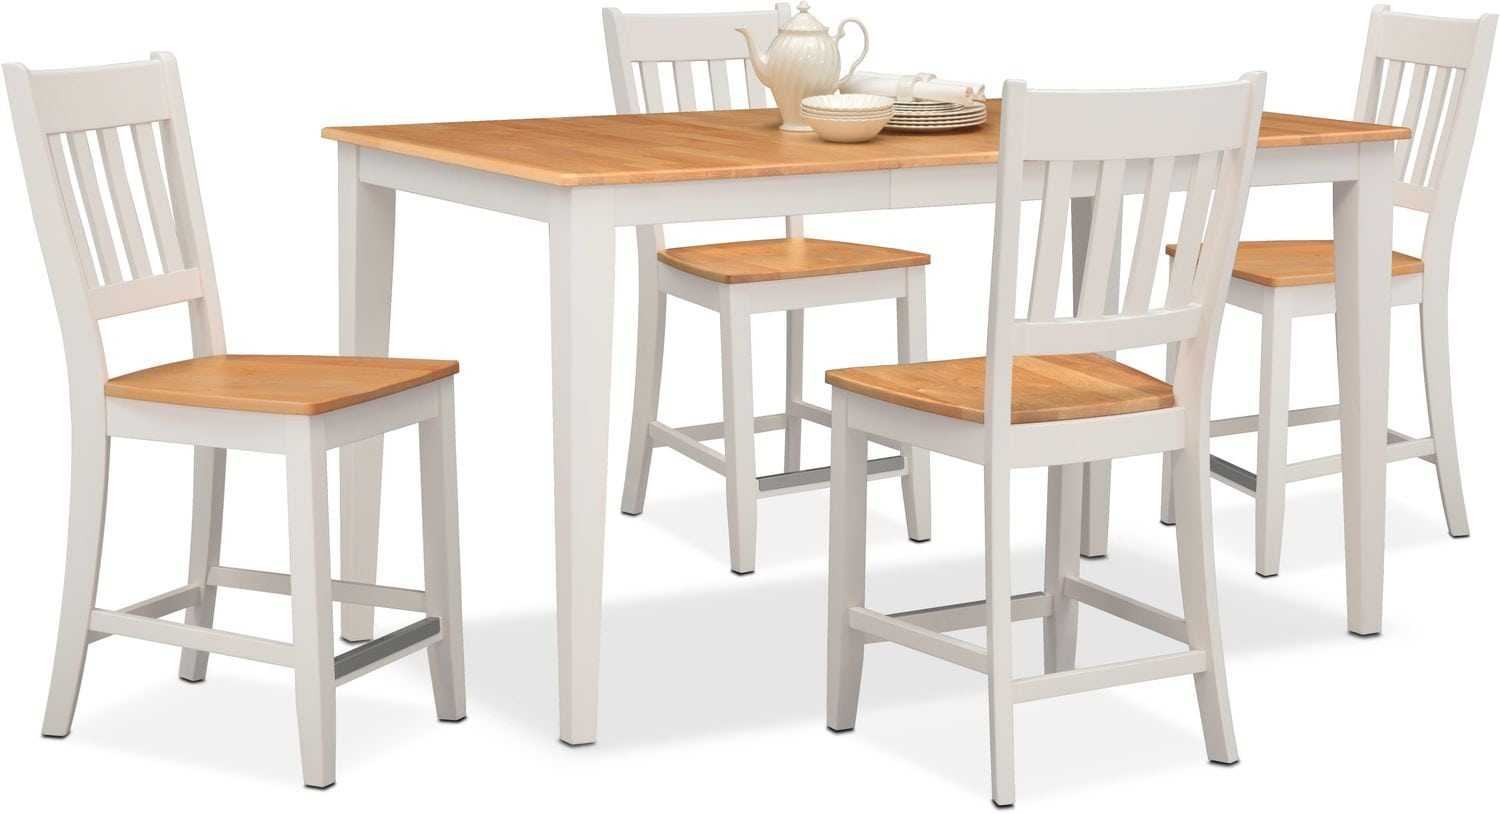 maple dining room chairs childrens pink desk and chair set nantucket counter height table 4 slat back